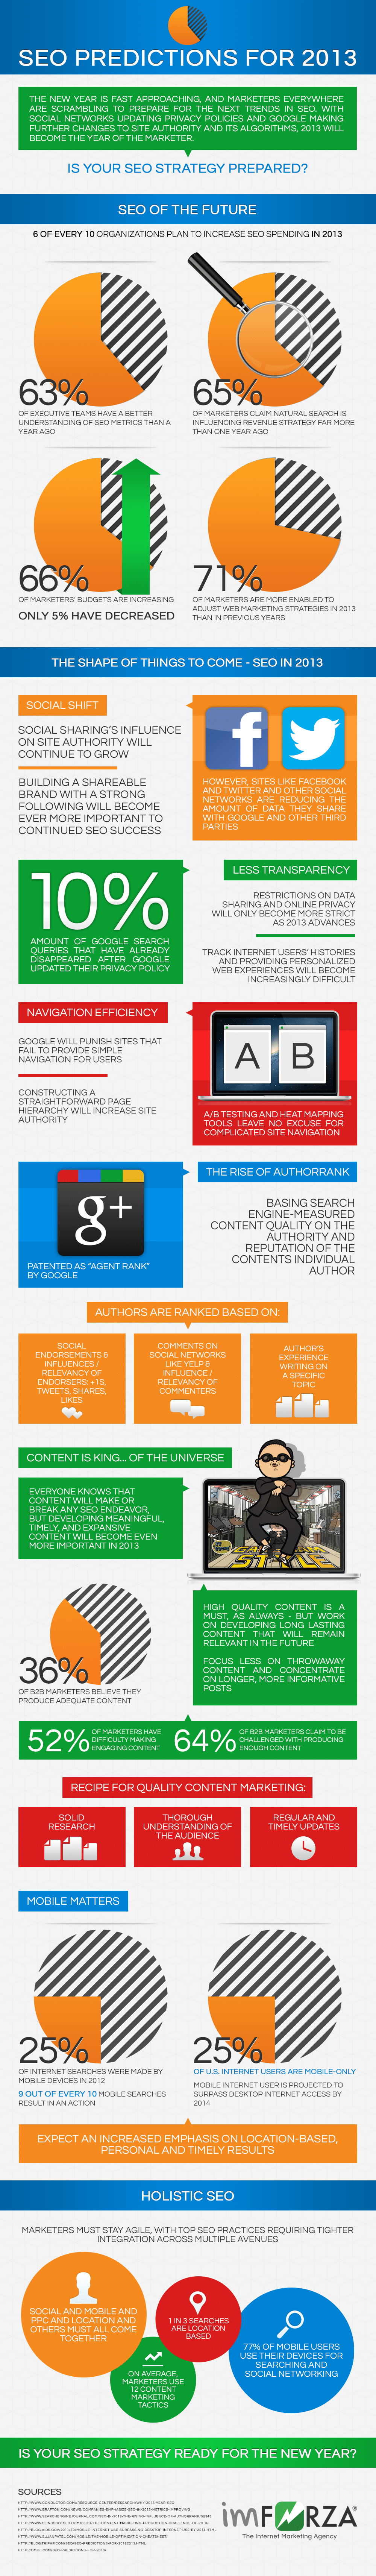 SEO Predictions for 2013 - Infographic.